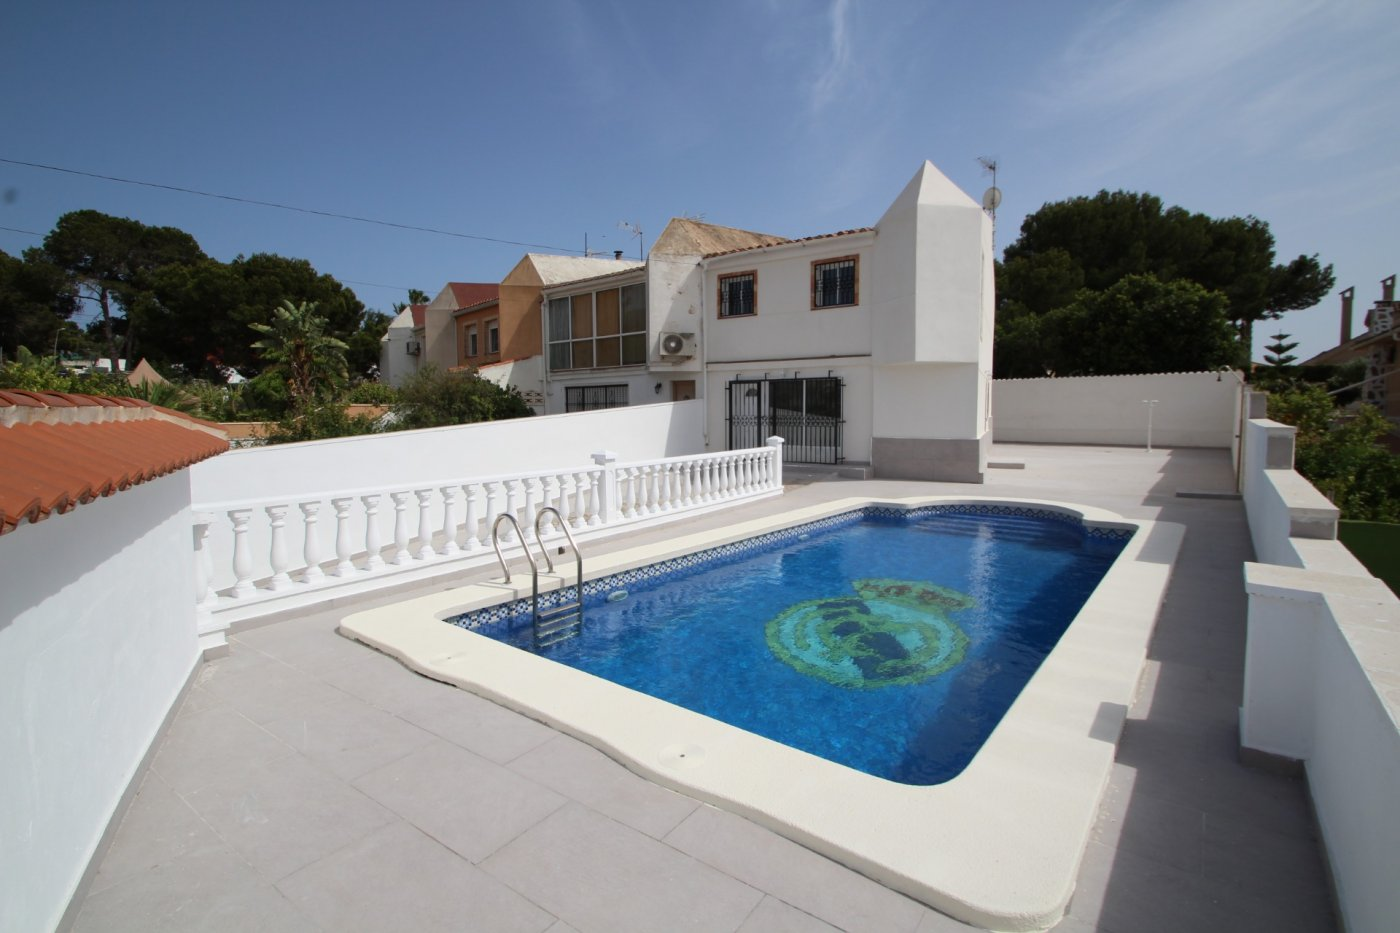 Fantastic renovated villa for sale with private pool in Los Balcones, Torrevieja.